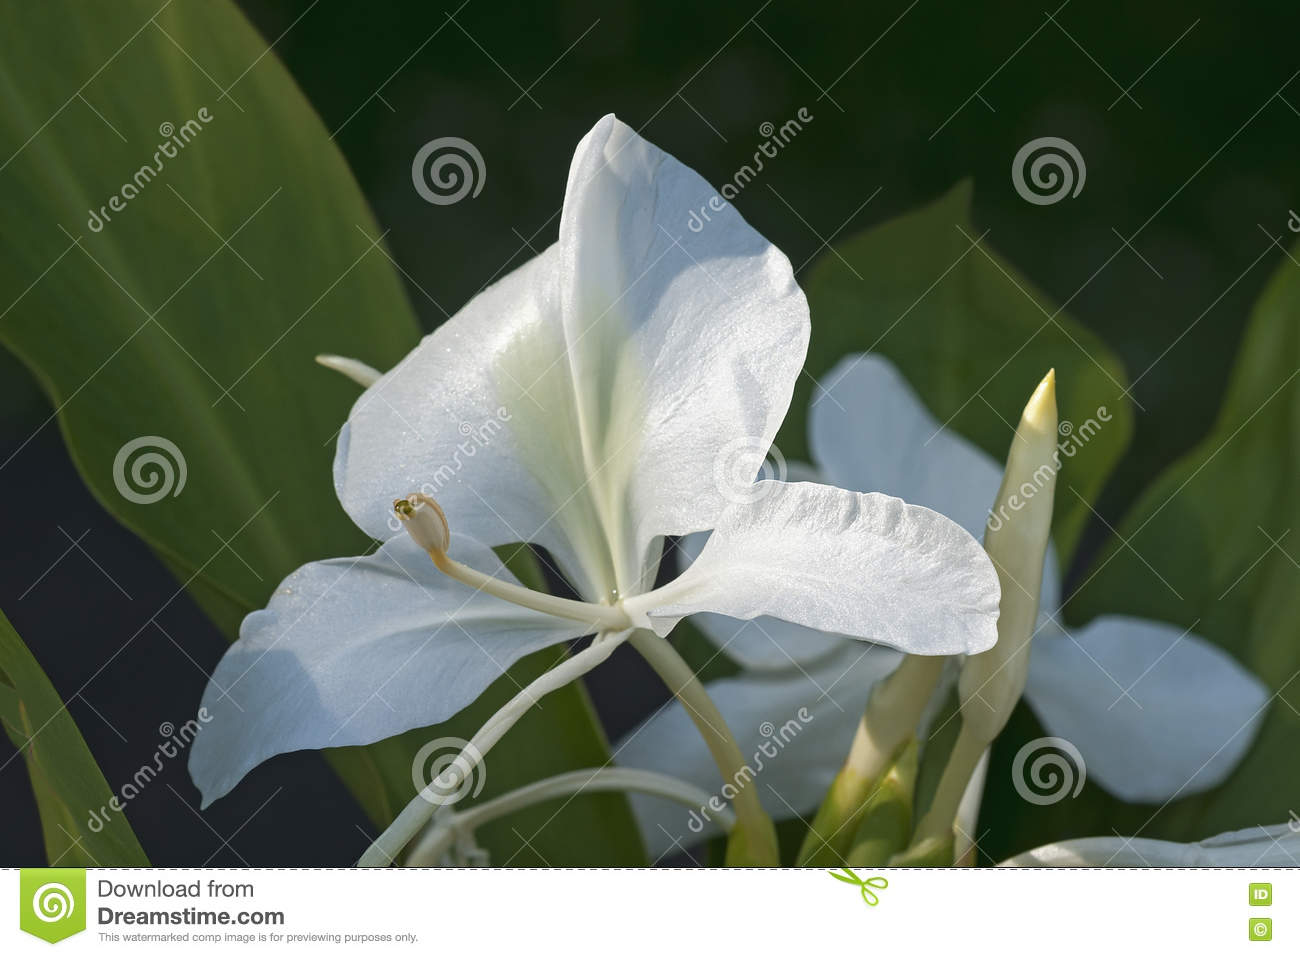 White ginger lily flowers stock image image of wildflower 81323825 white ginger lily flowers mightylinksfo